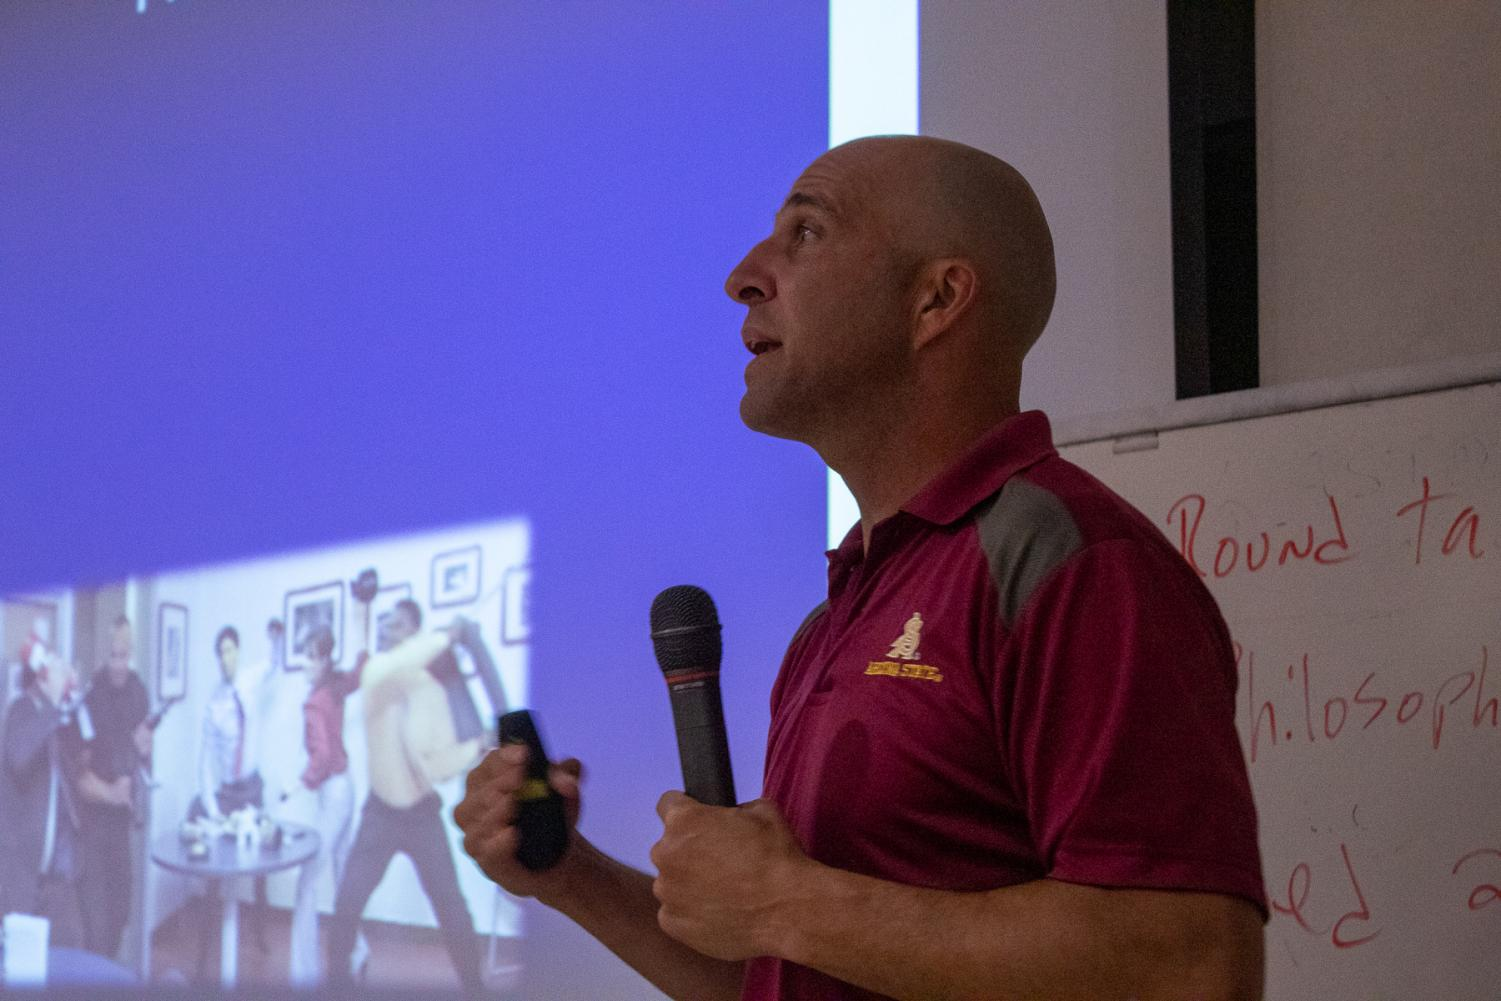 Lt. Shawn Hill explains how to fight in a run, hide or fight scenario on Tuesday, Nov. 19, 2019, in the MacDougall Administration Building at City College in Santa Barbara, Calif. Lt. Hill says to do what you know you can do and not to fight if you're not a fighter.